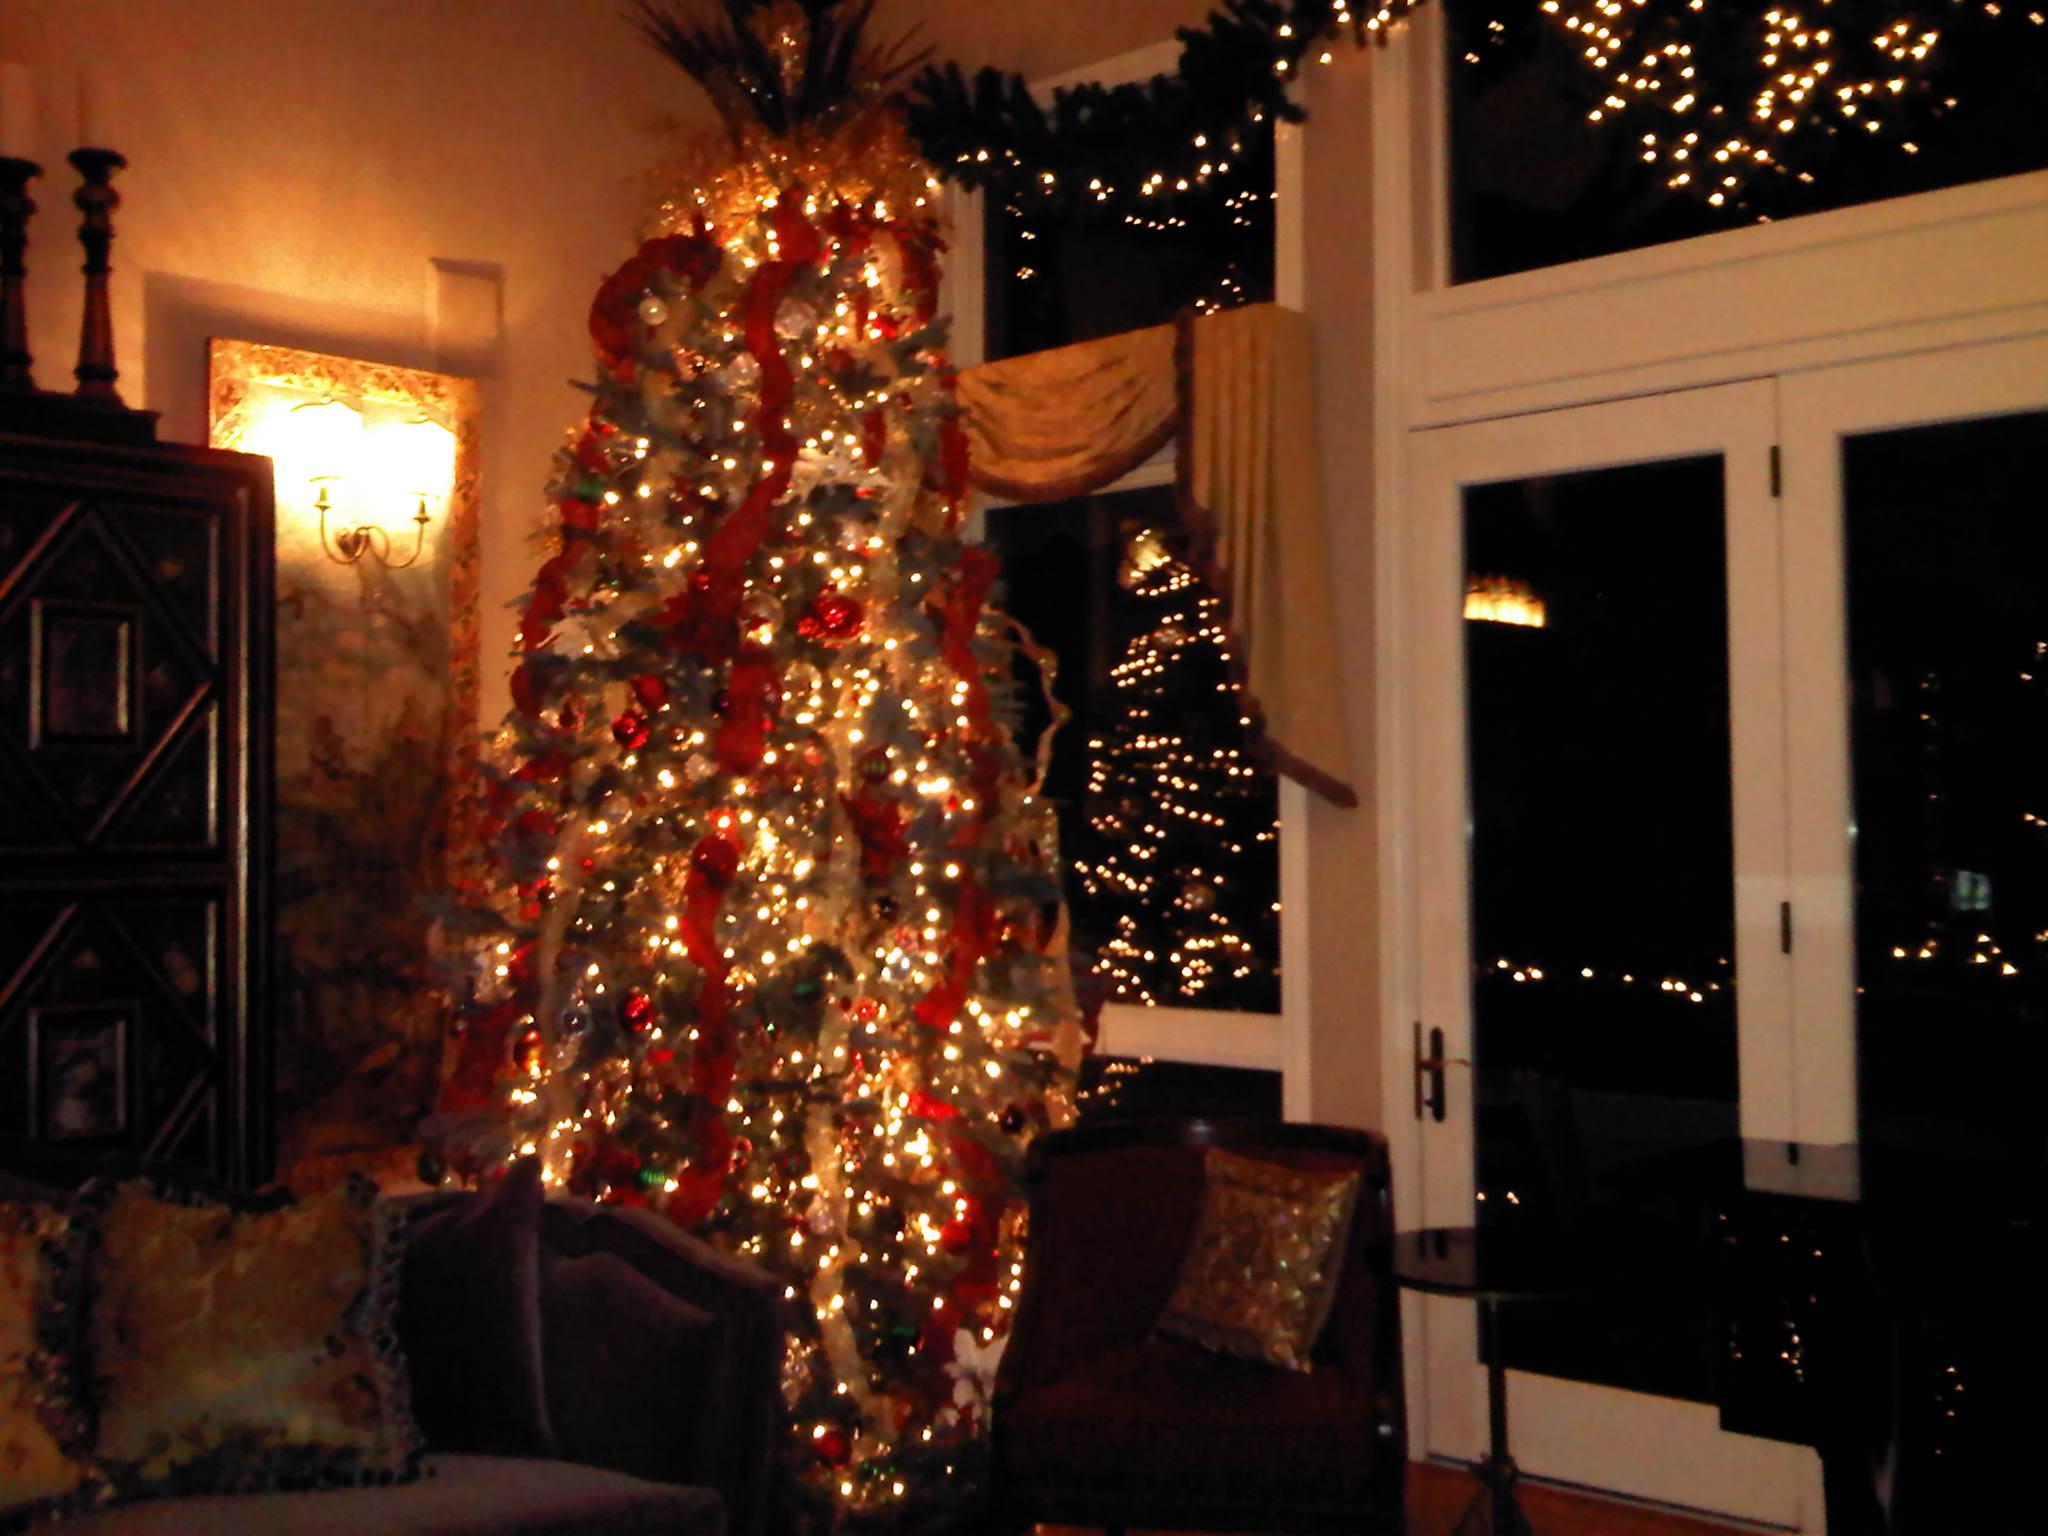 red, white, gold Christmas tree and decor - Party Planner Denver.jpg